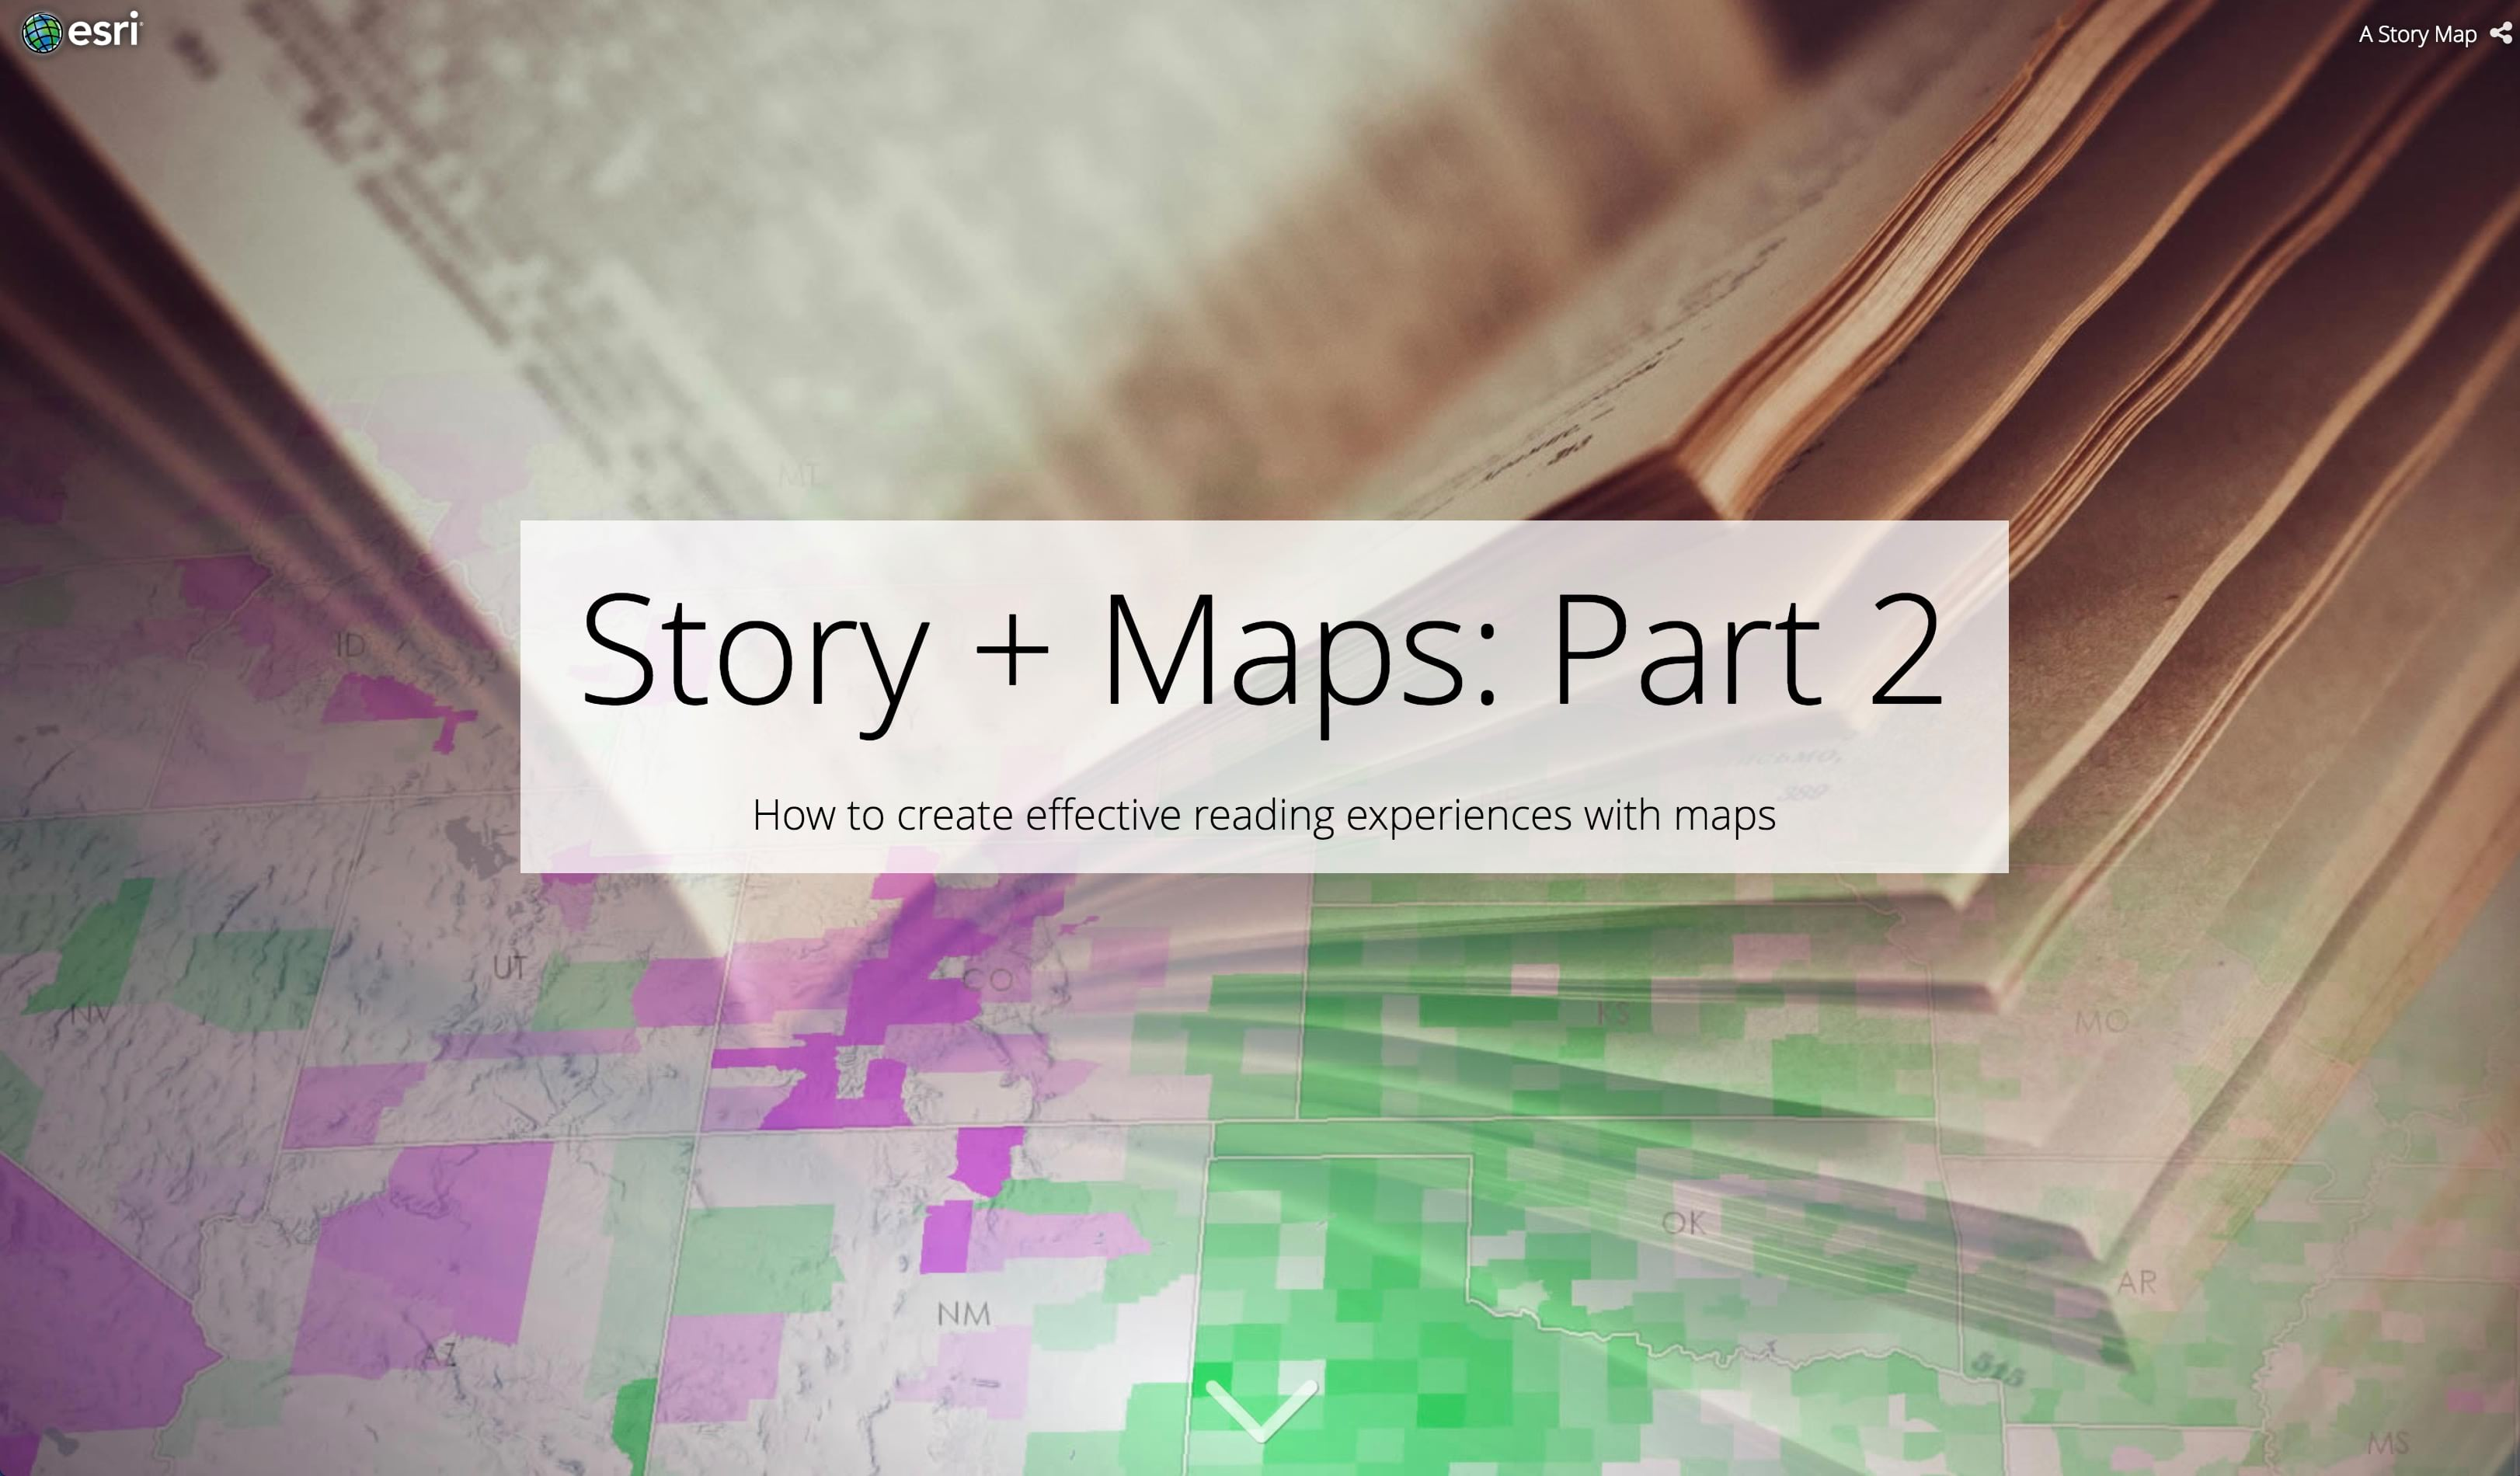 Story + Maps: Part 2